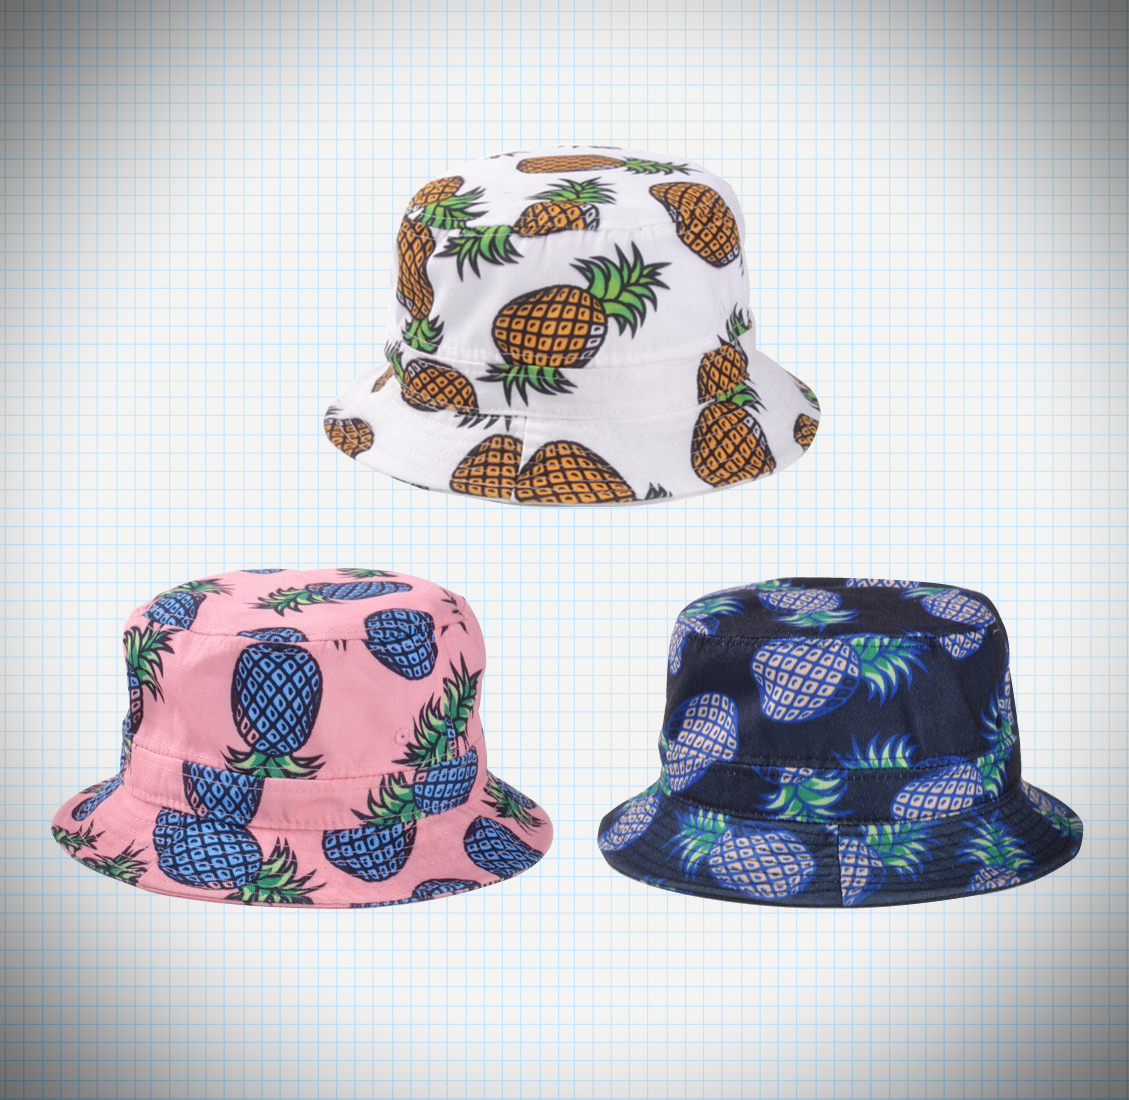 Pineapple Bucket hat on Storenvy 032a250c4be